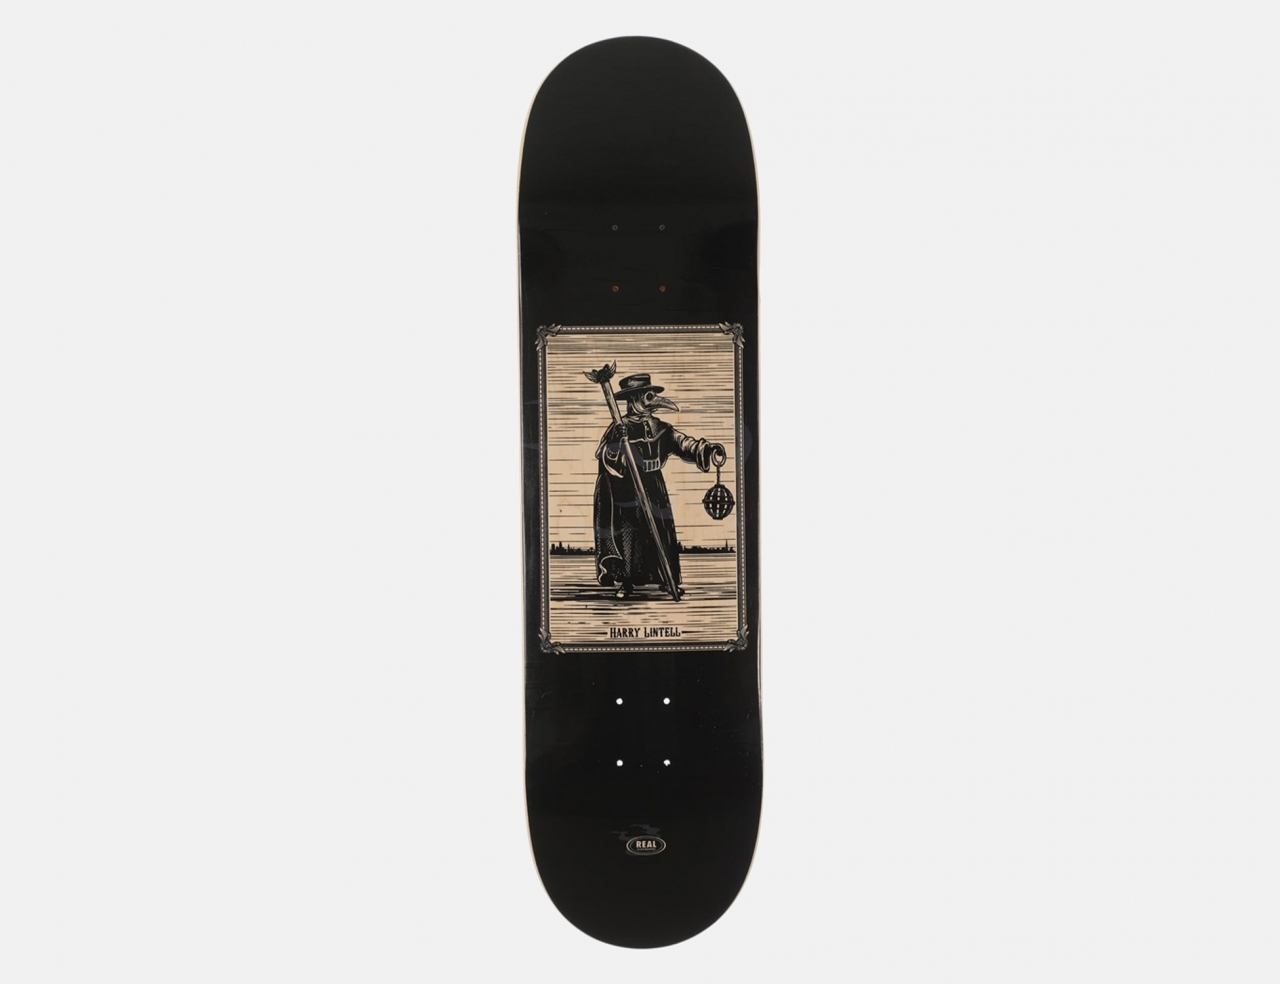 Real New Pro One Off 8.5 Deck